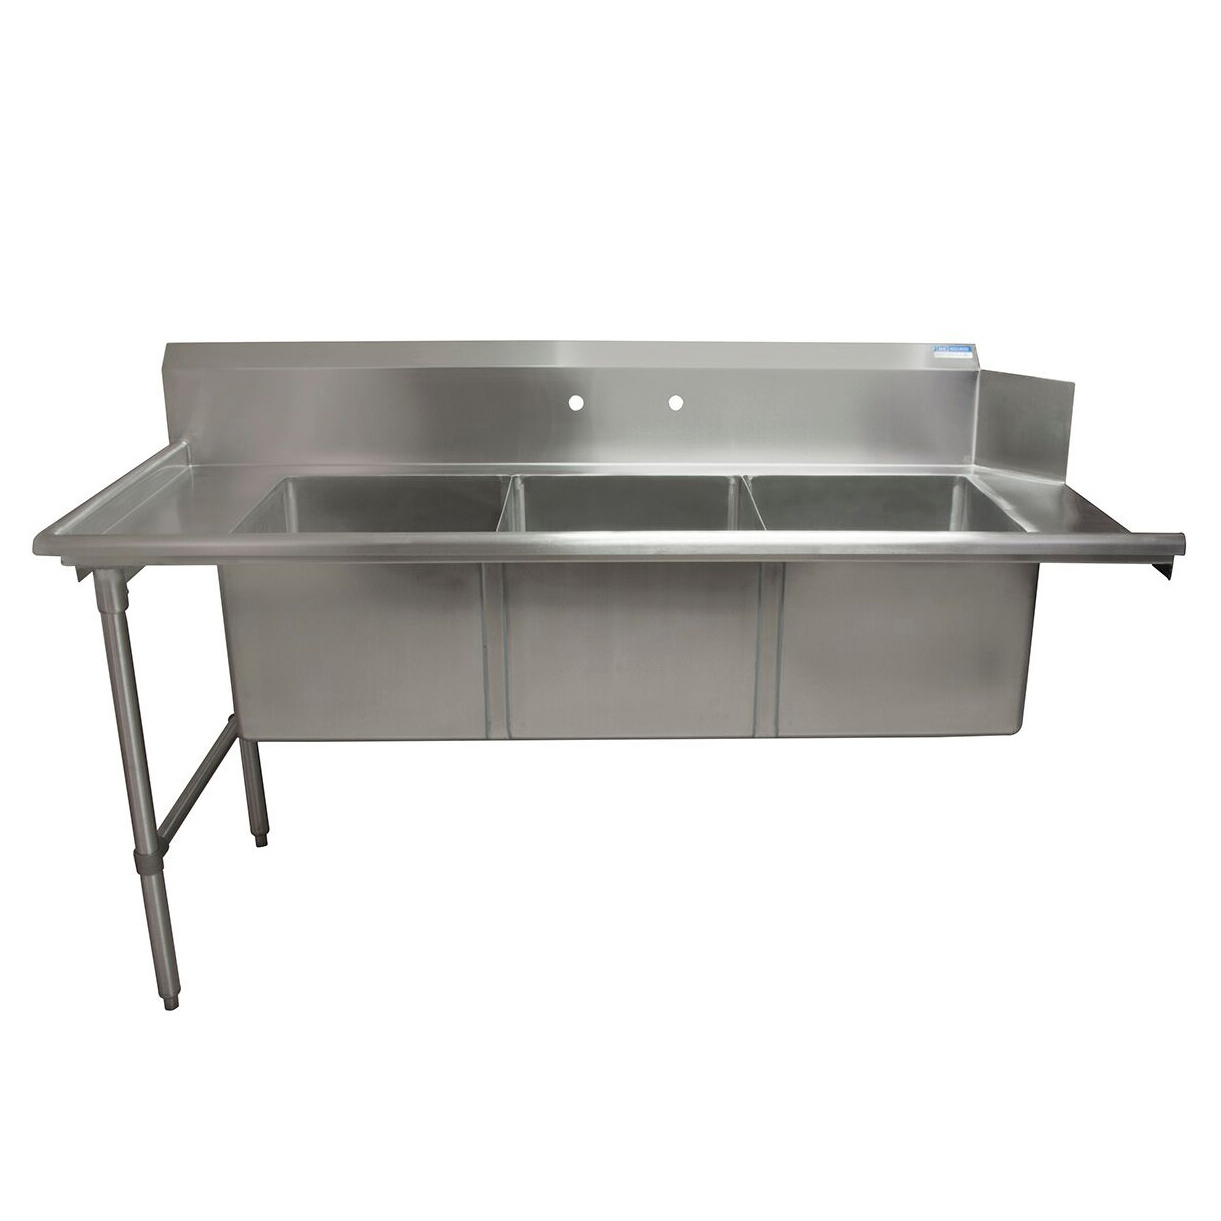 BK Resources BKSDT-3-1820-14-LS dishtable, with potsinks